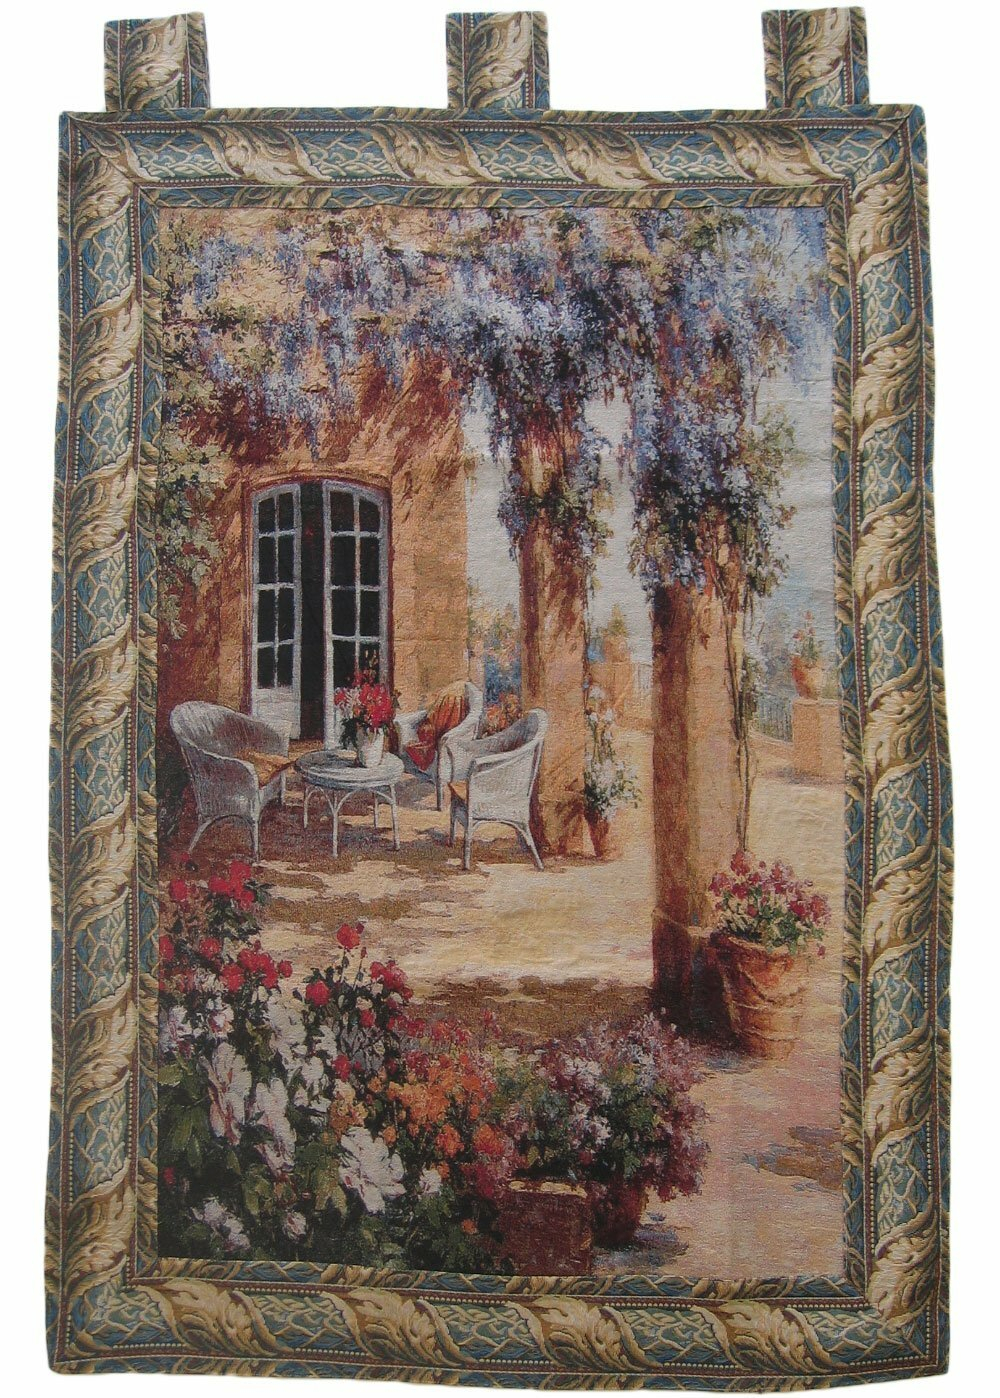 Quiet Evening Woven Tapestry Regarding Most Up To Date Blended Fabric Classic French Rococo Woven Tapestries (View 6 of 20)